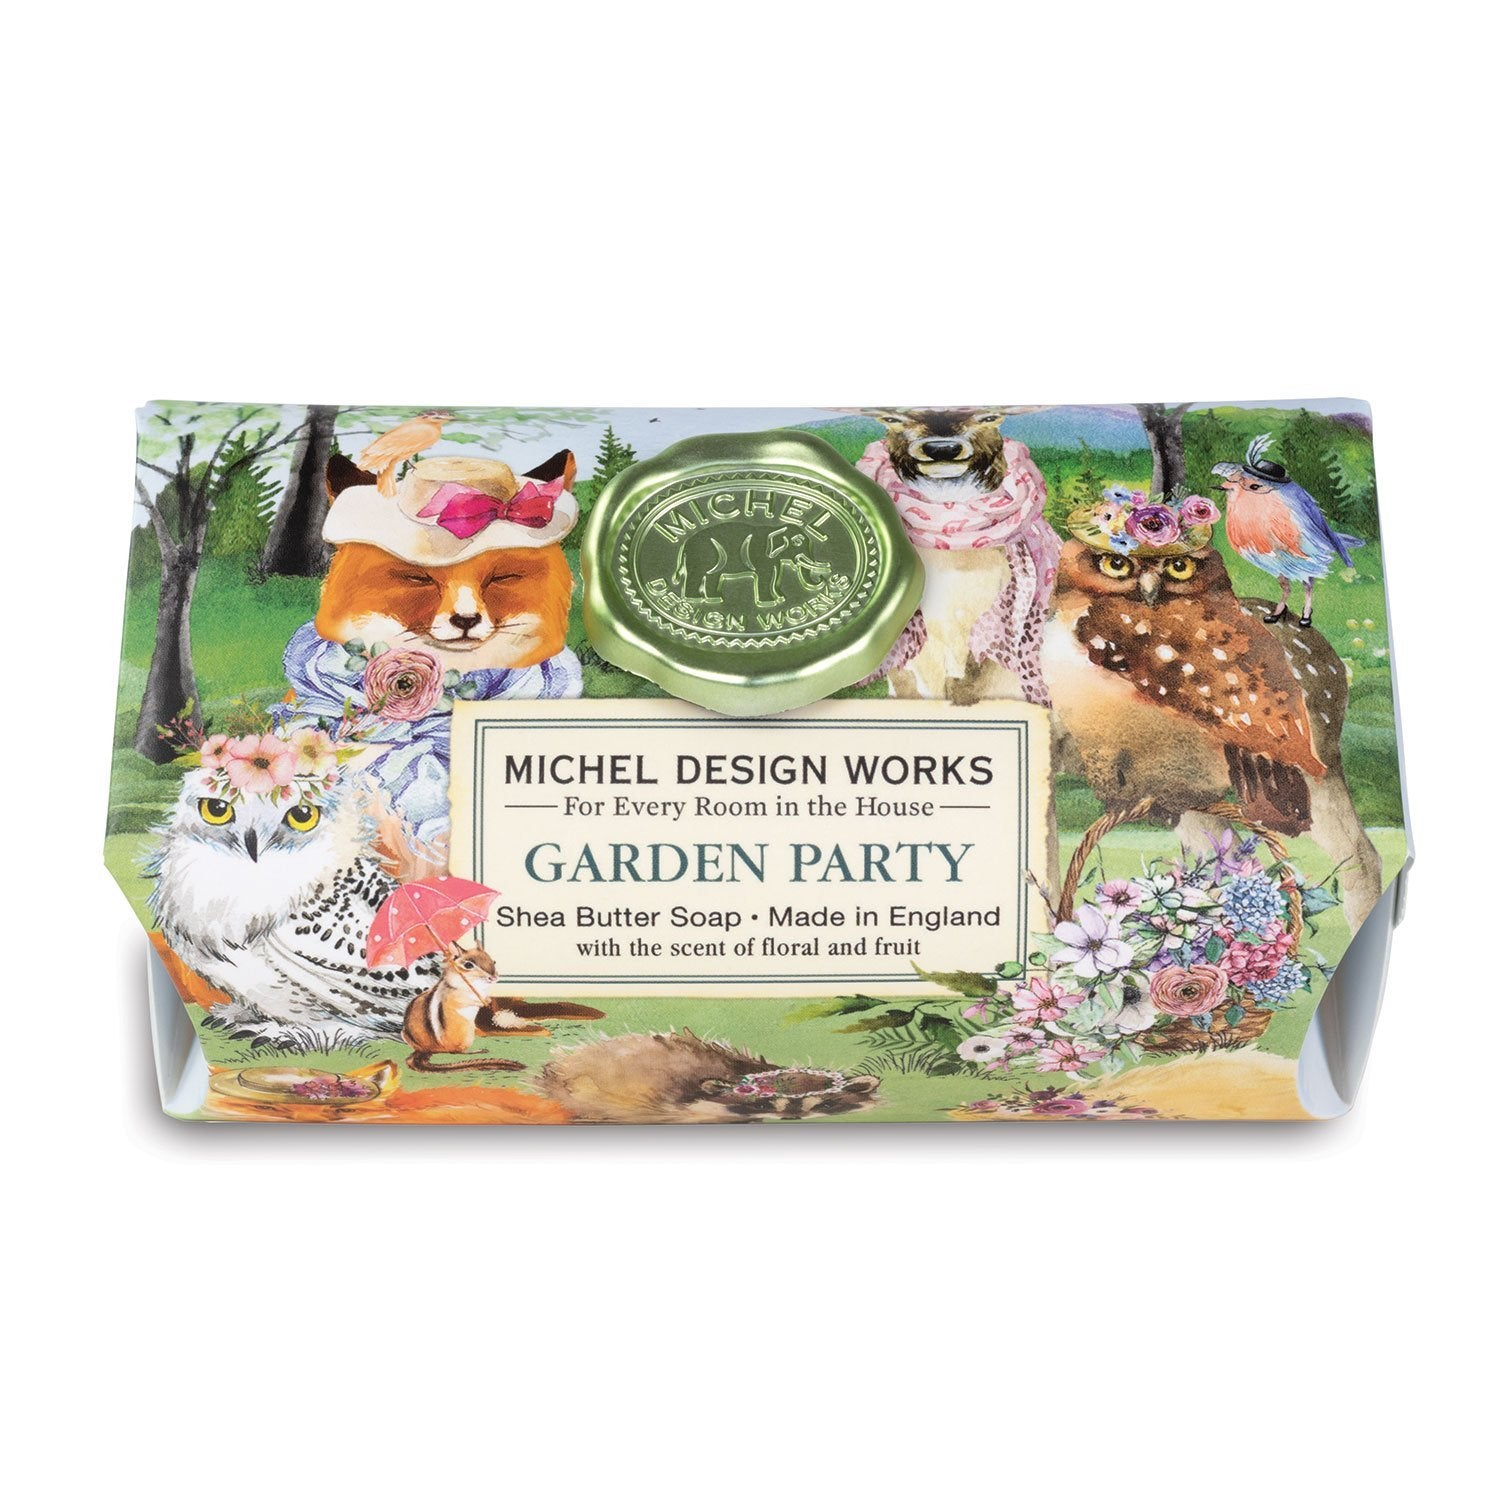 GARDEN PARTY SOAP SOAL335 - Molly's! A Chic and Unique Boutique